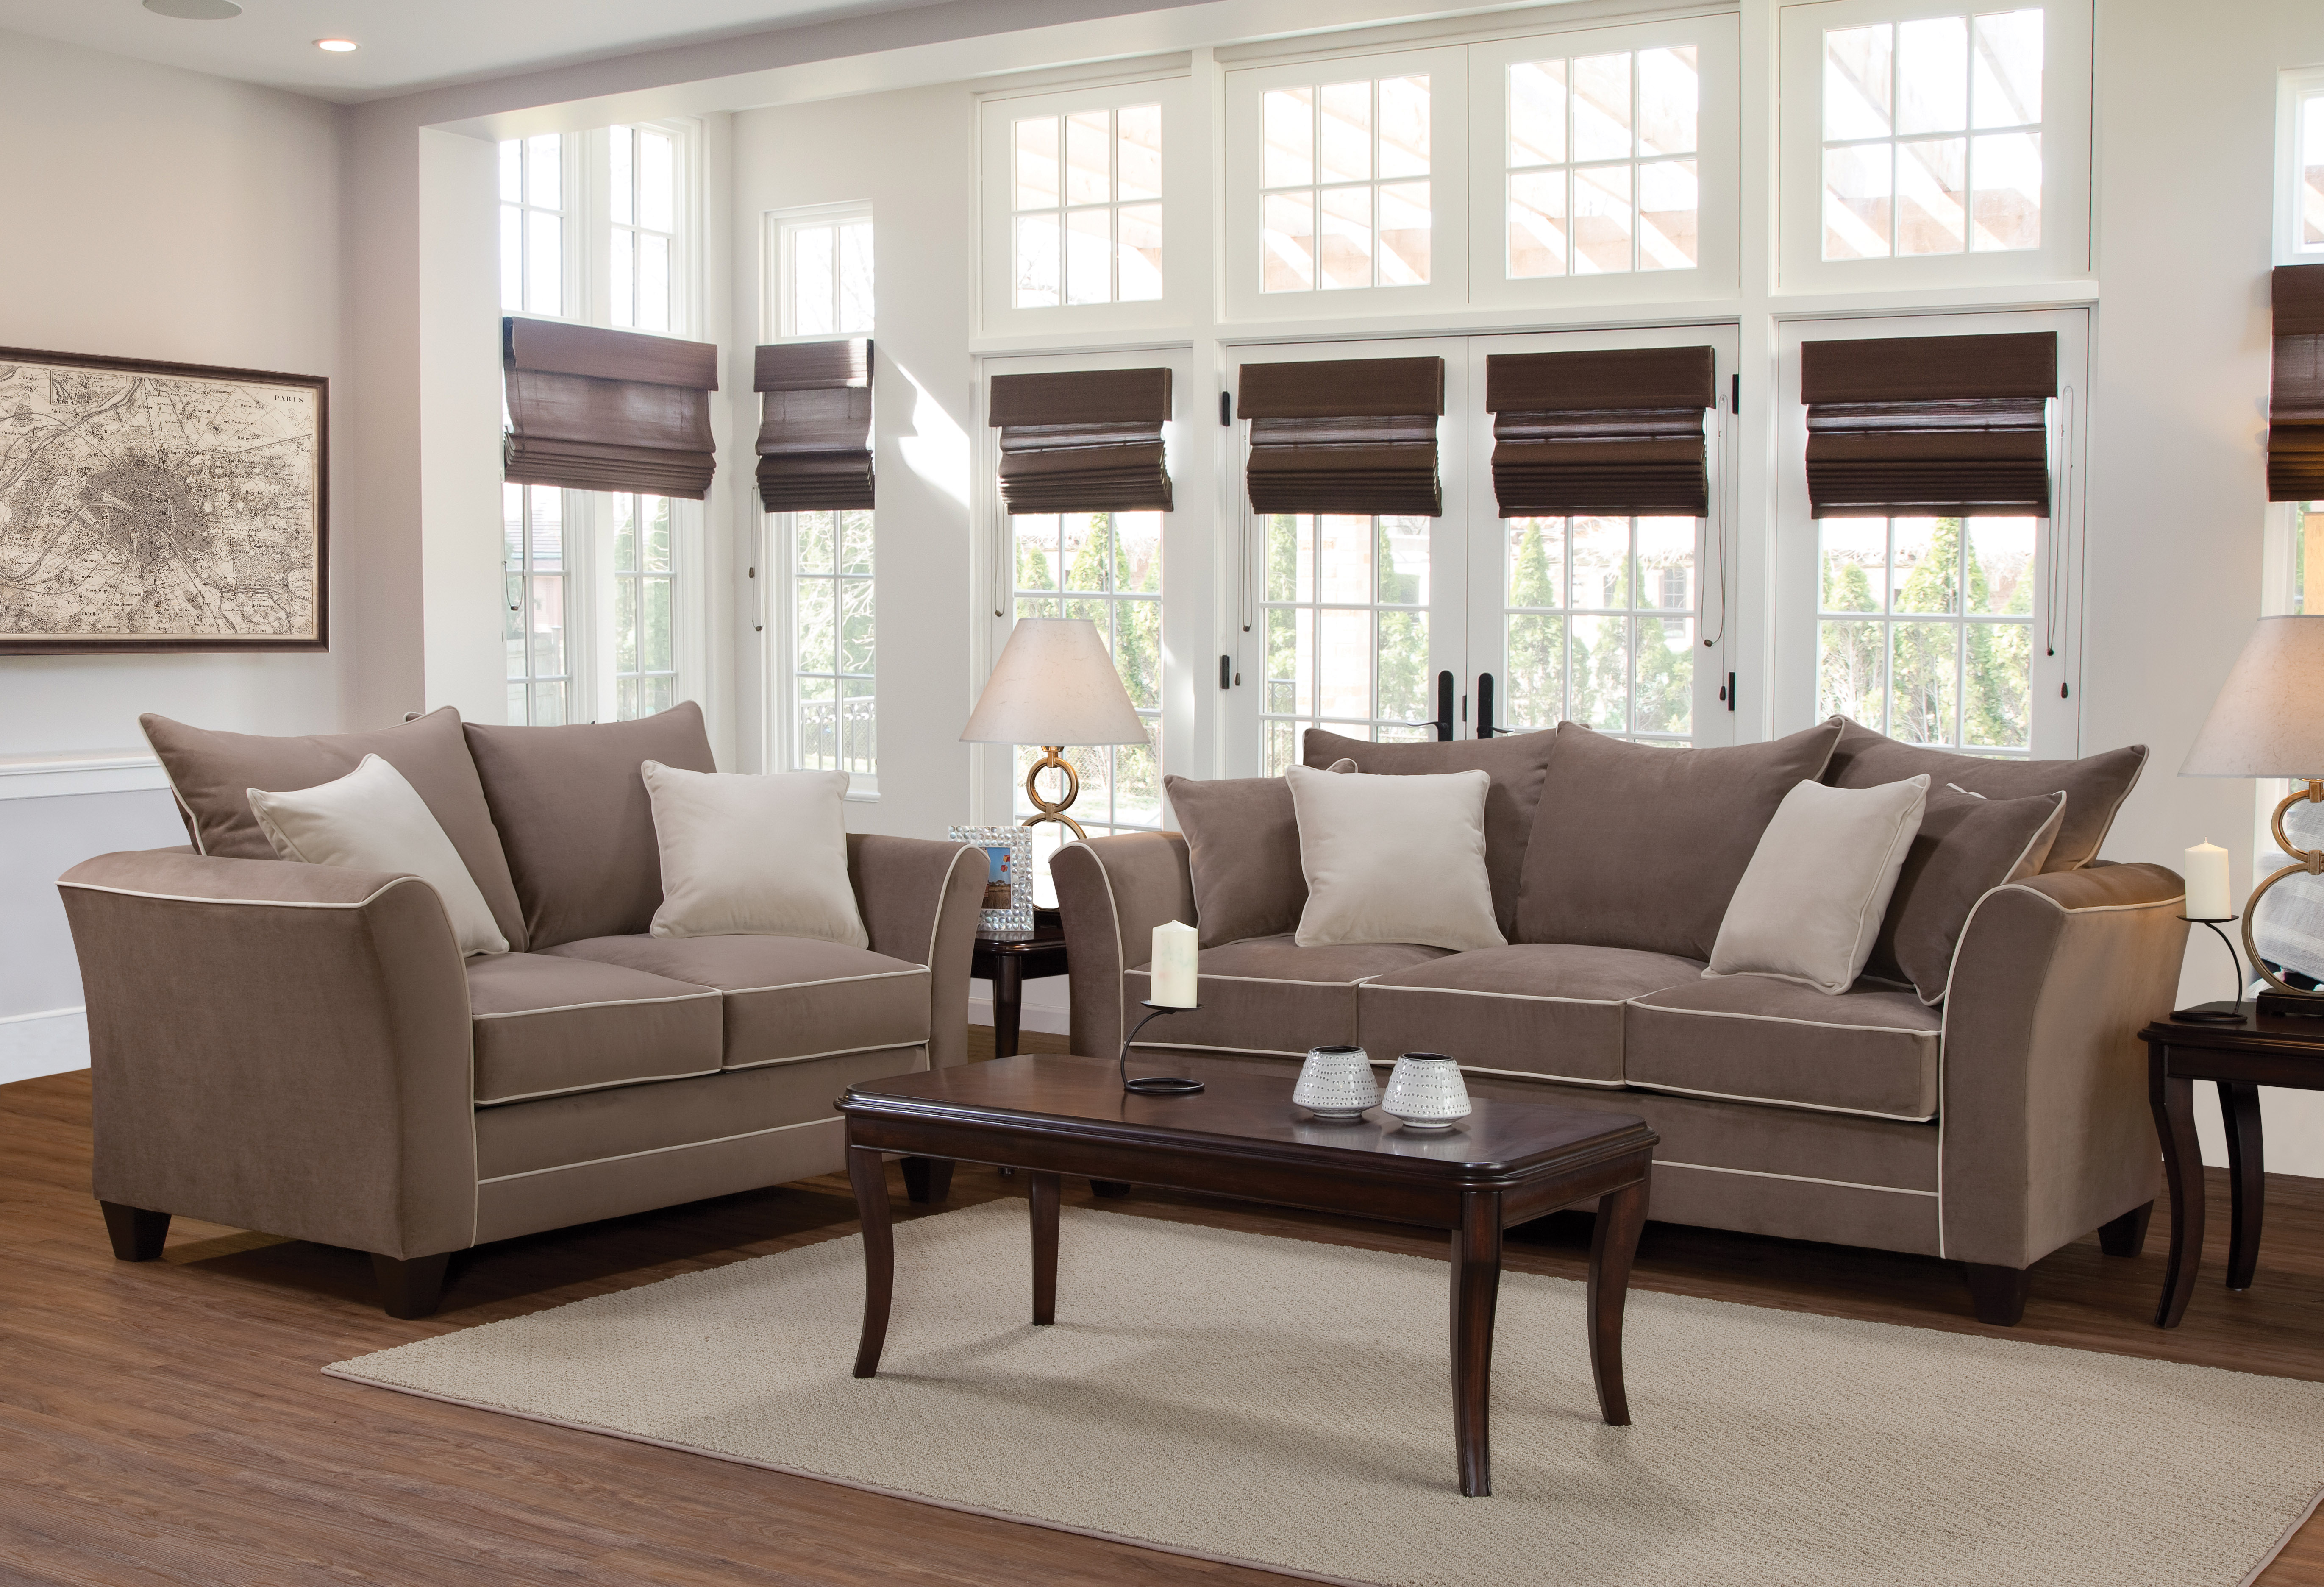 high point furniture nc furniture store queen anne furniture rh highpointfurniture net best furniture prices in north carolina best furniture stores in hickory north carolina